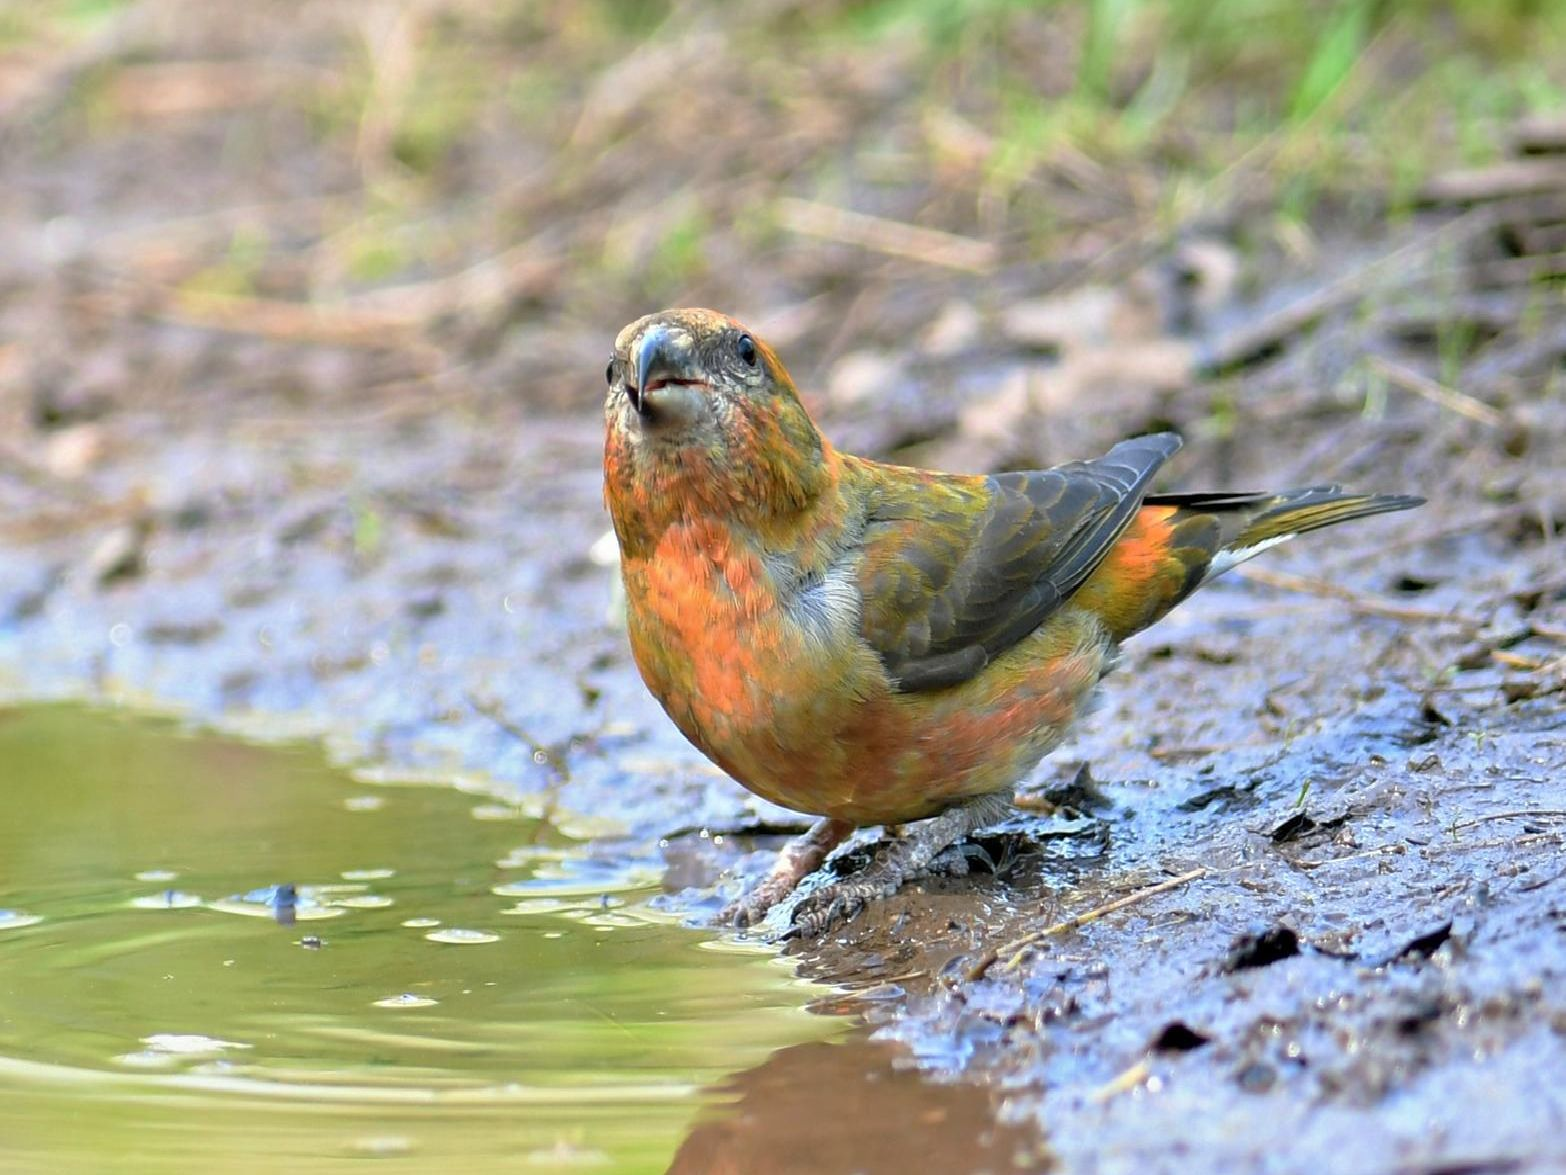 This beautiful bird is enjoying a drink. Do you know what it is? Answer: A male crossbill.